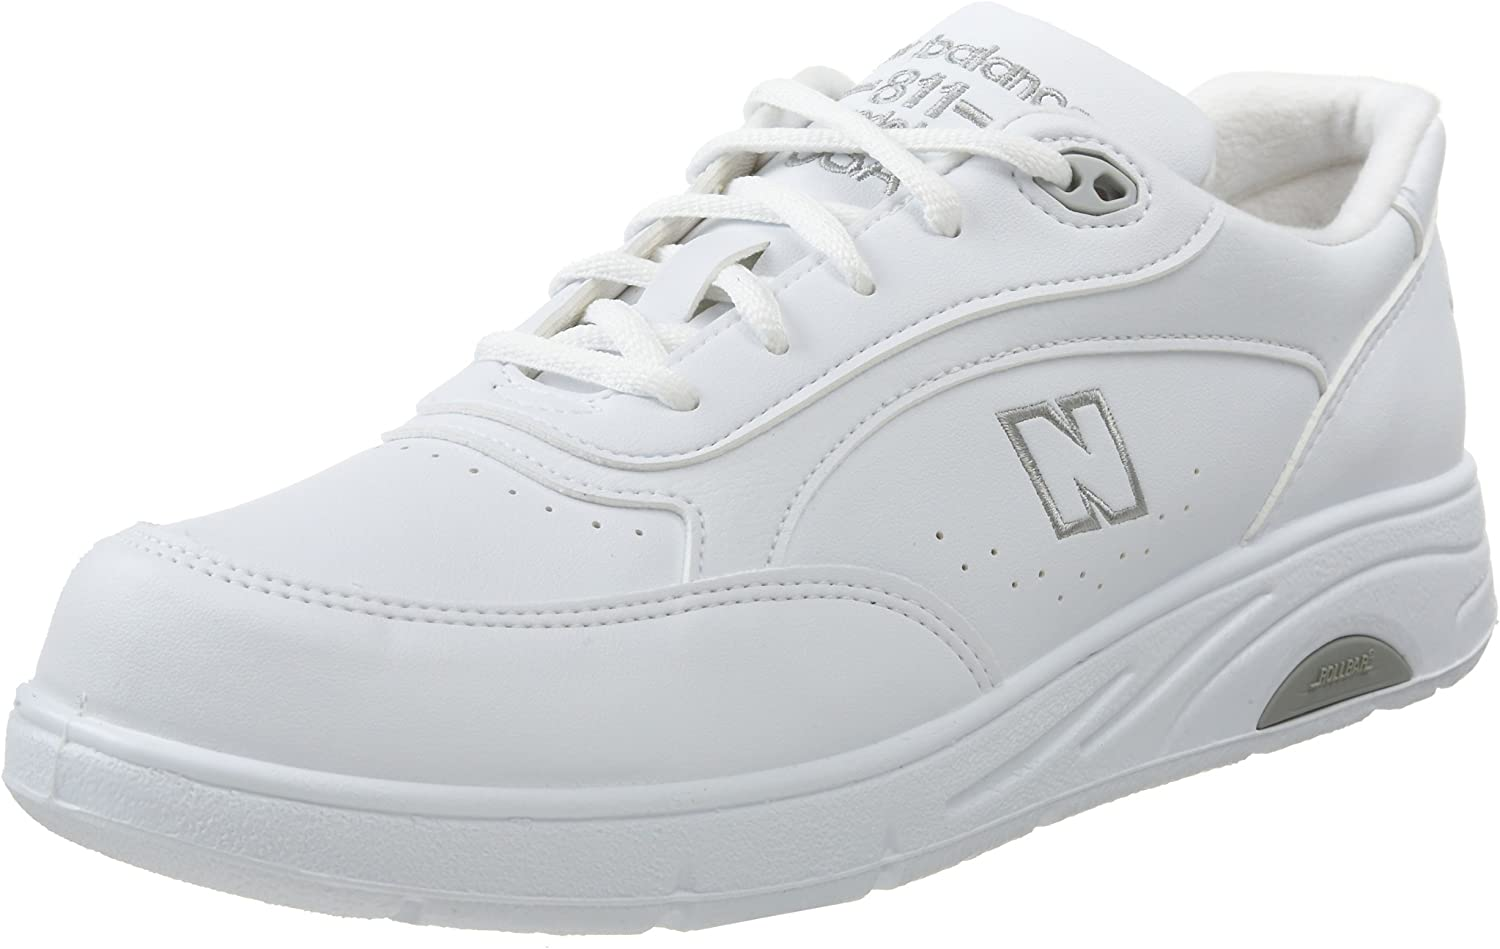 New Balance Men's MW811 Walking shoes